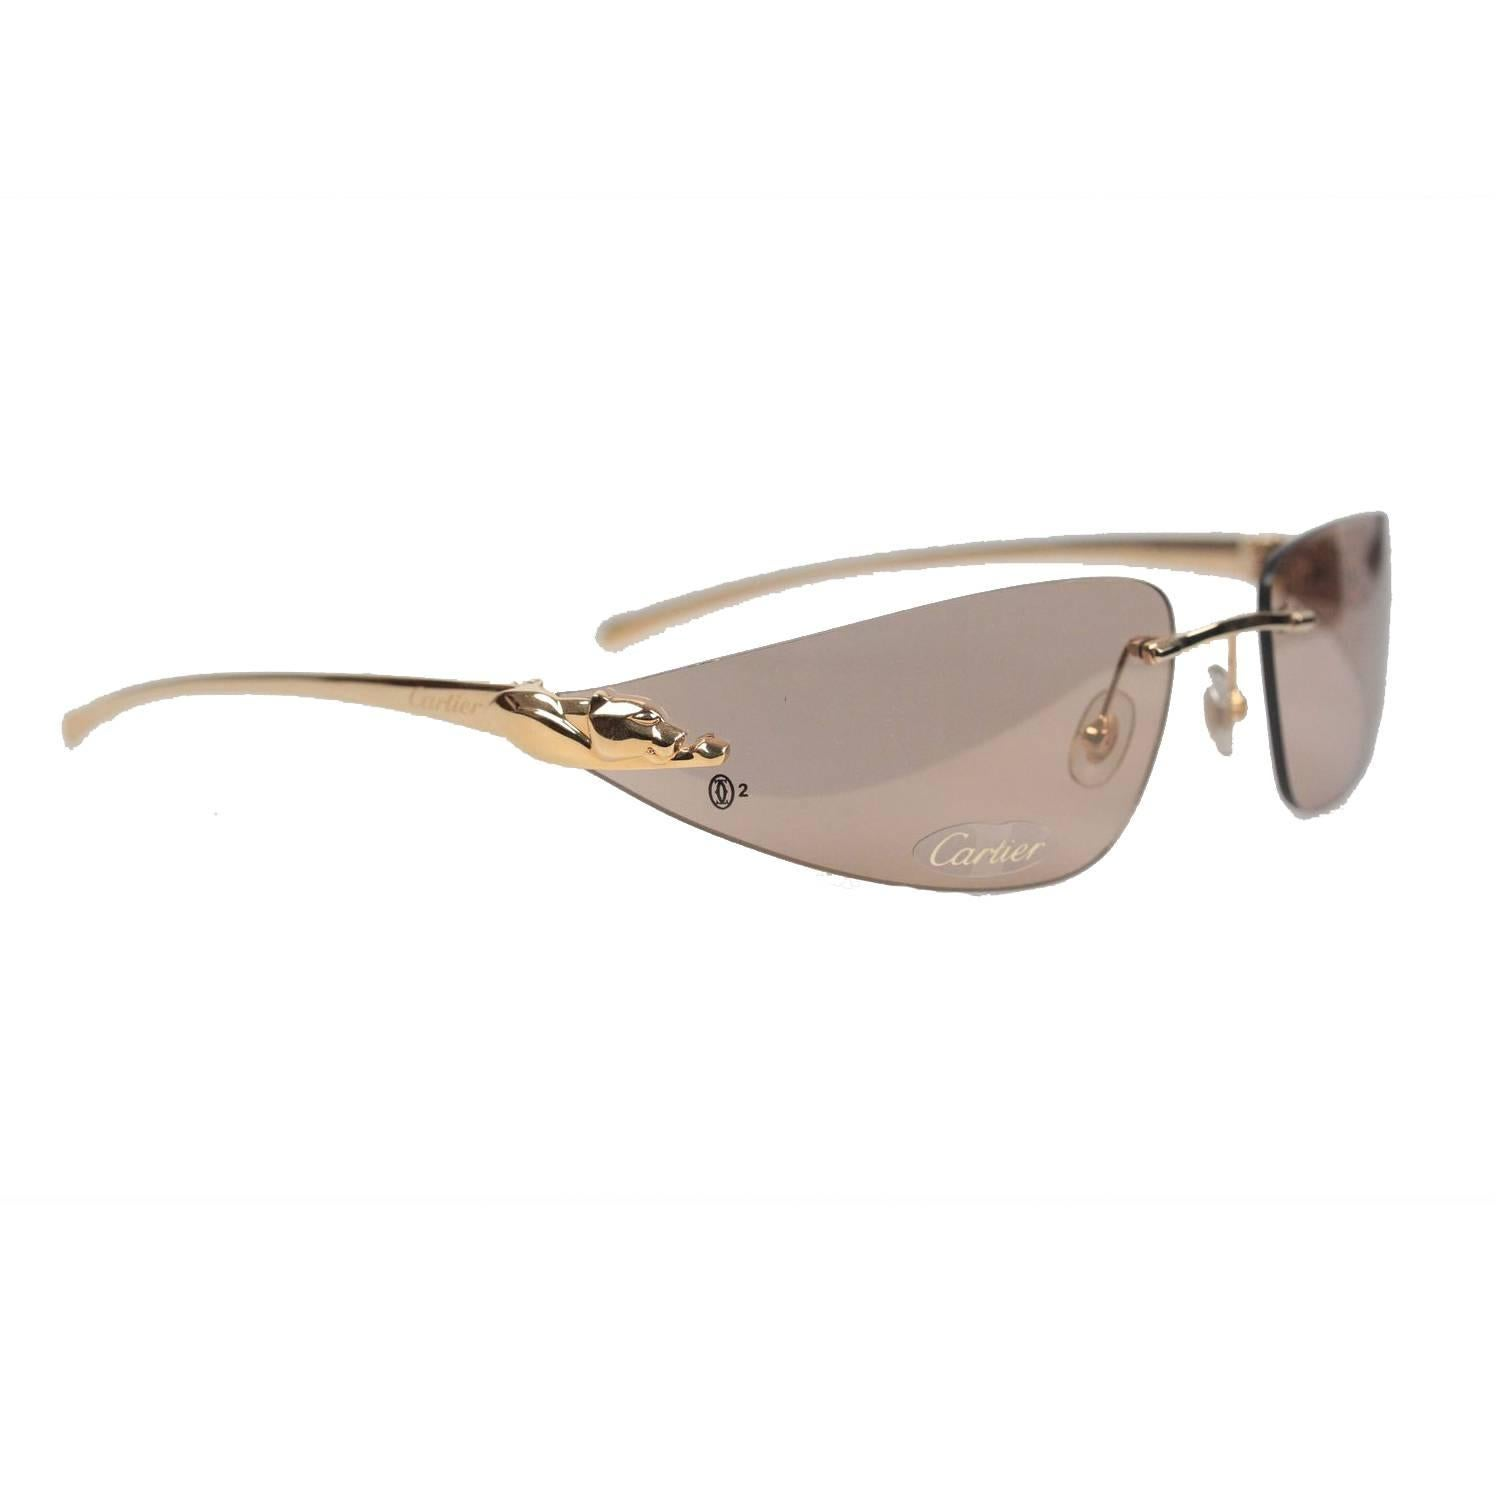 Cartier Paris Sunglasses Panthere T8200611 Gold Brown 110 at 1stdibs Cartier Paris Sunglasses Panthere T8200611 Gold Brown 110 For Sale